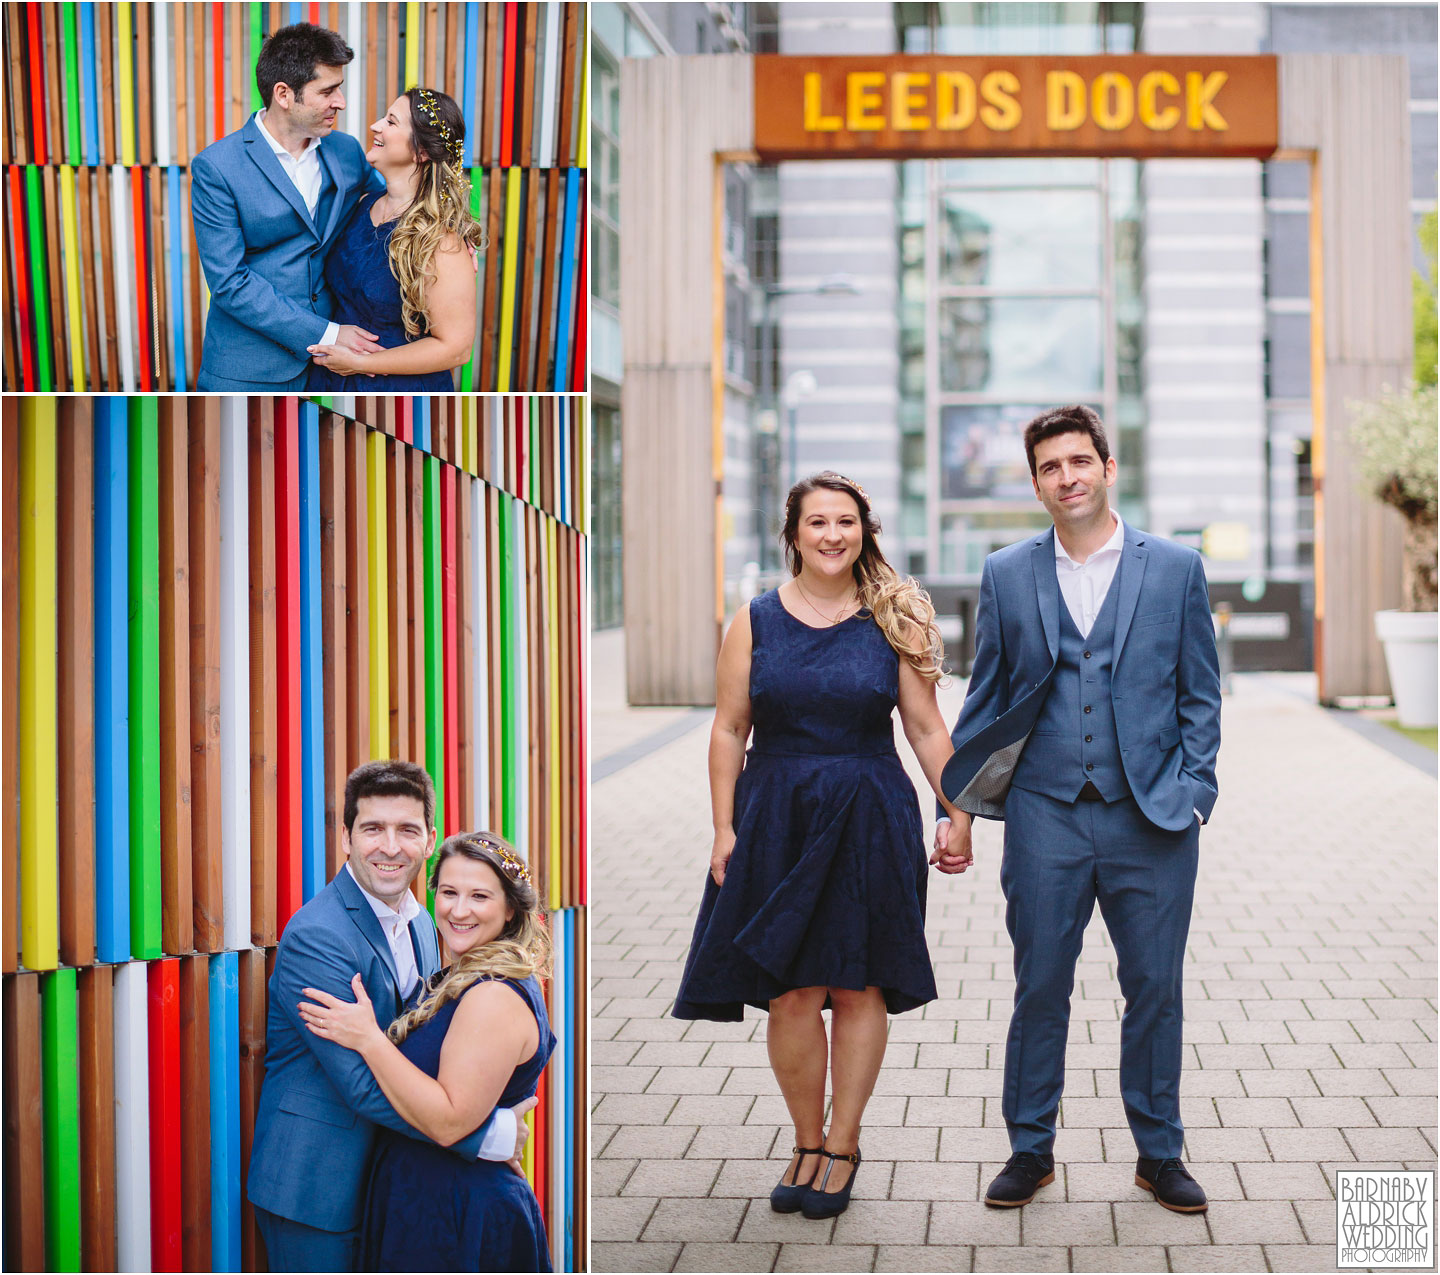 Wedding Photos at Dock 29 on the Leeds Riverside